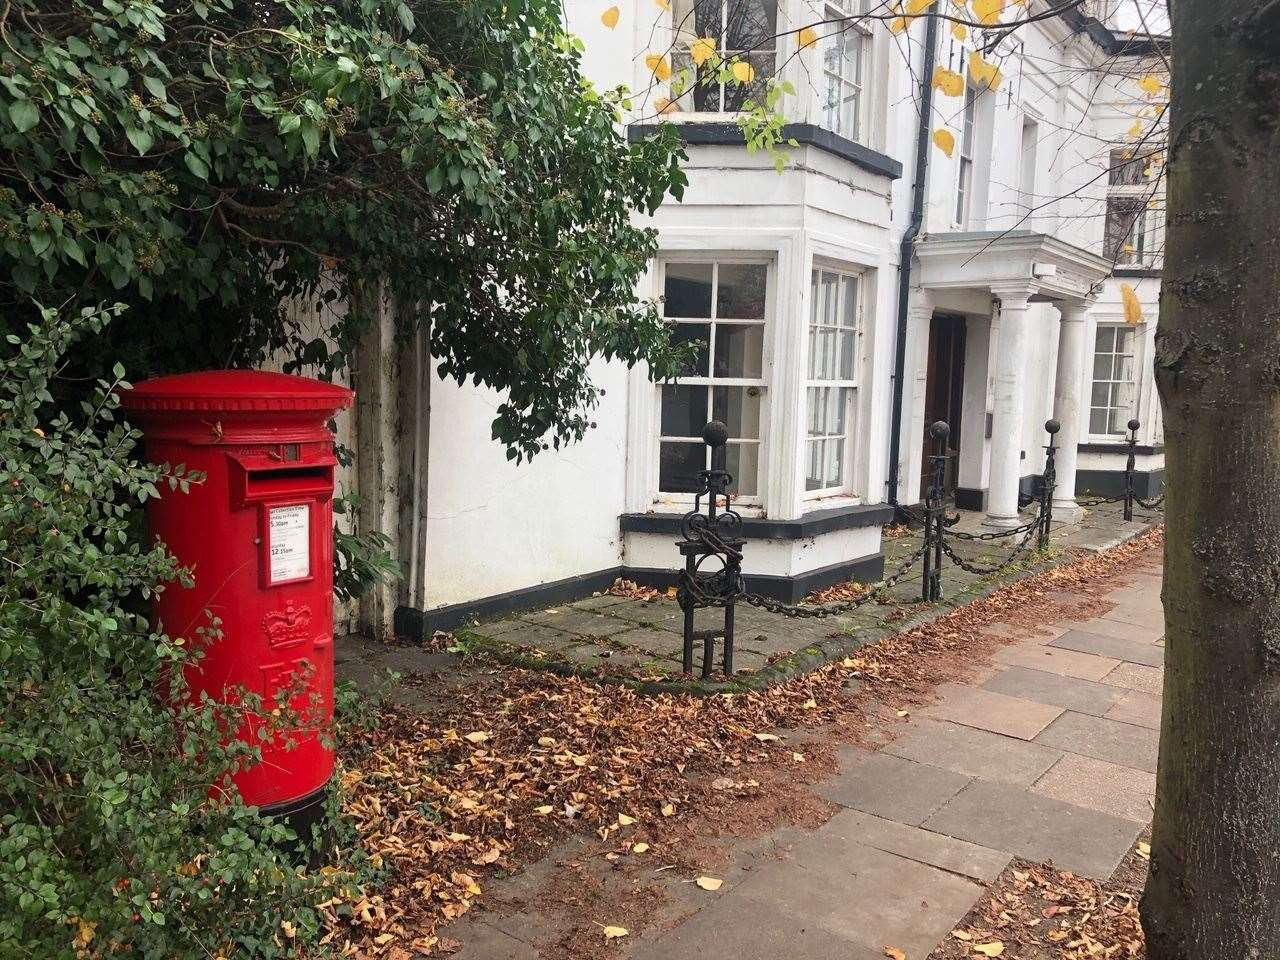 """Royal Mail says: """"The postbox has very low volumes of letters so it would appear not to be needed."""""""